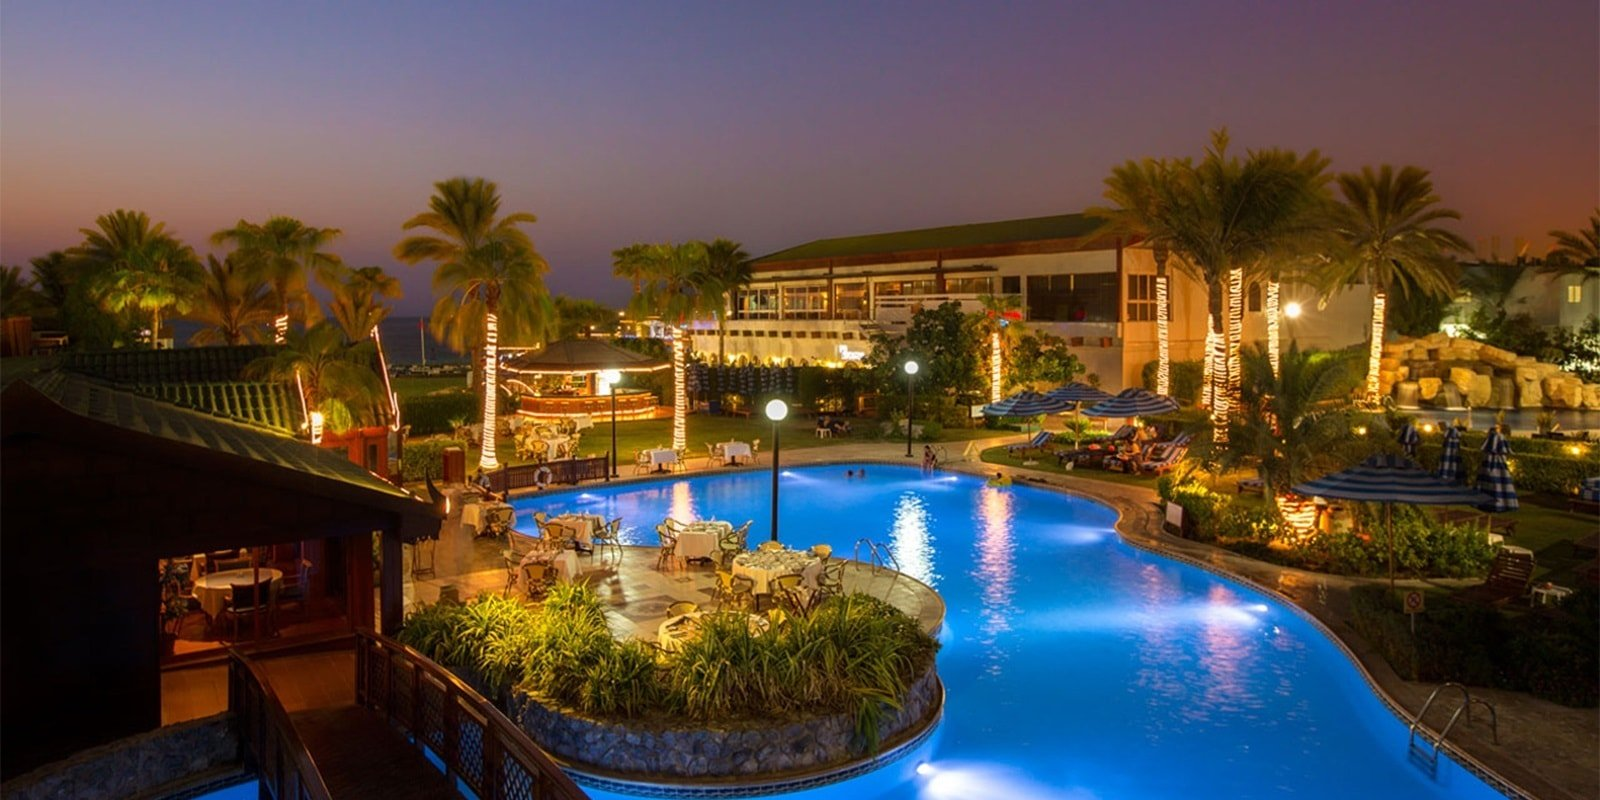 7.	Dubai Marine Beach Resort & Spa